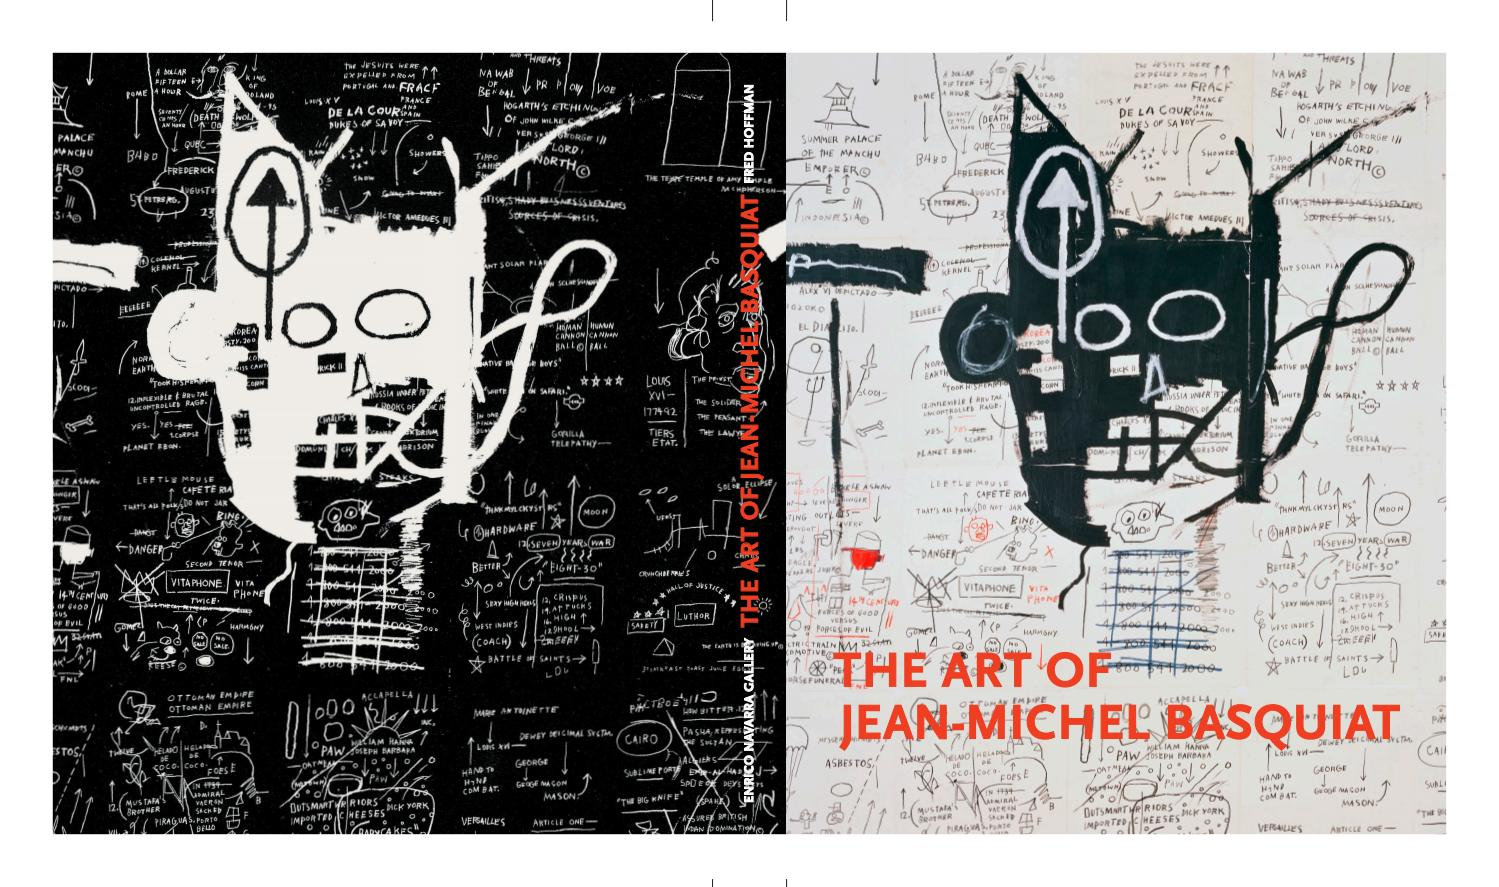 c4e1ae1f8b86 The Art of Jean-Michel Basquiat by Fred Hoffman 2017 by jeanmichel - issuu